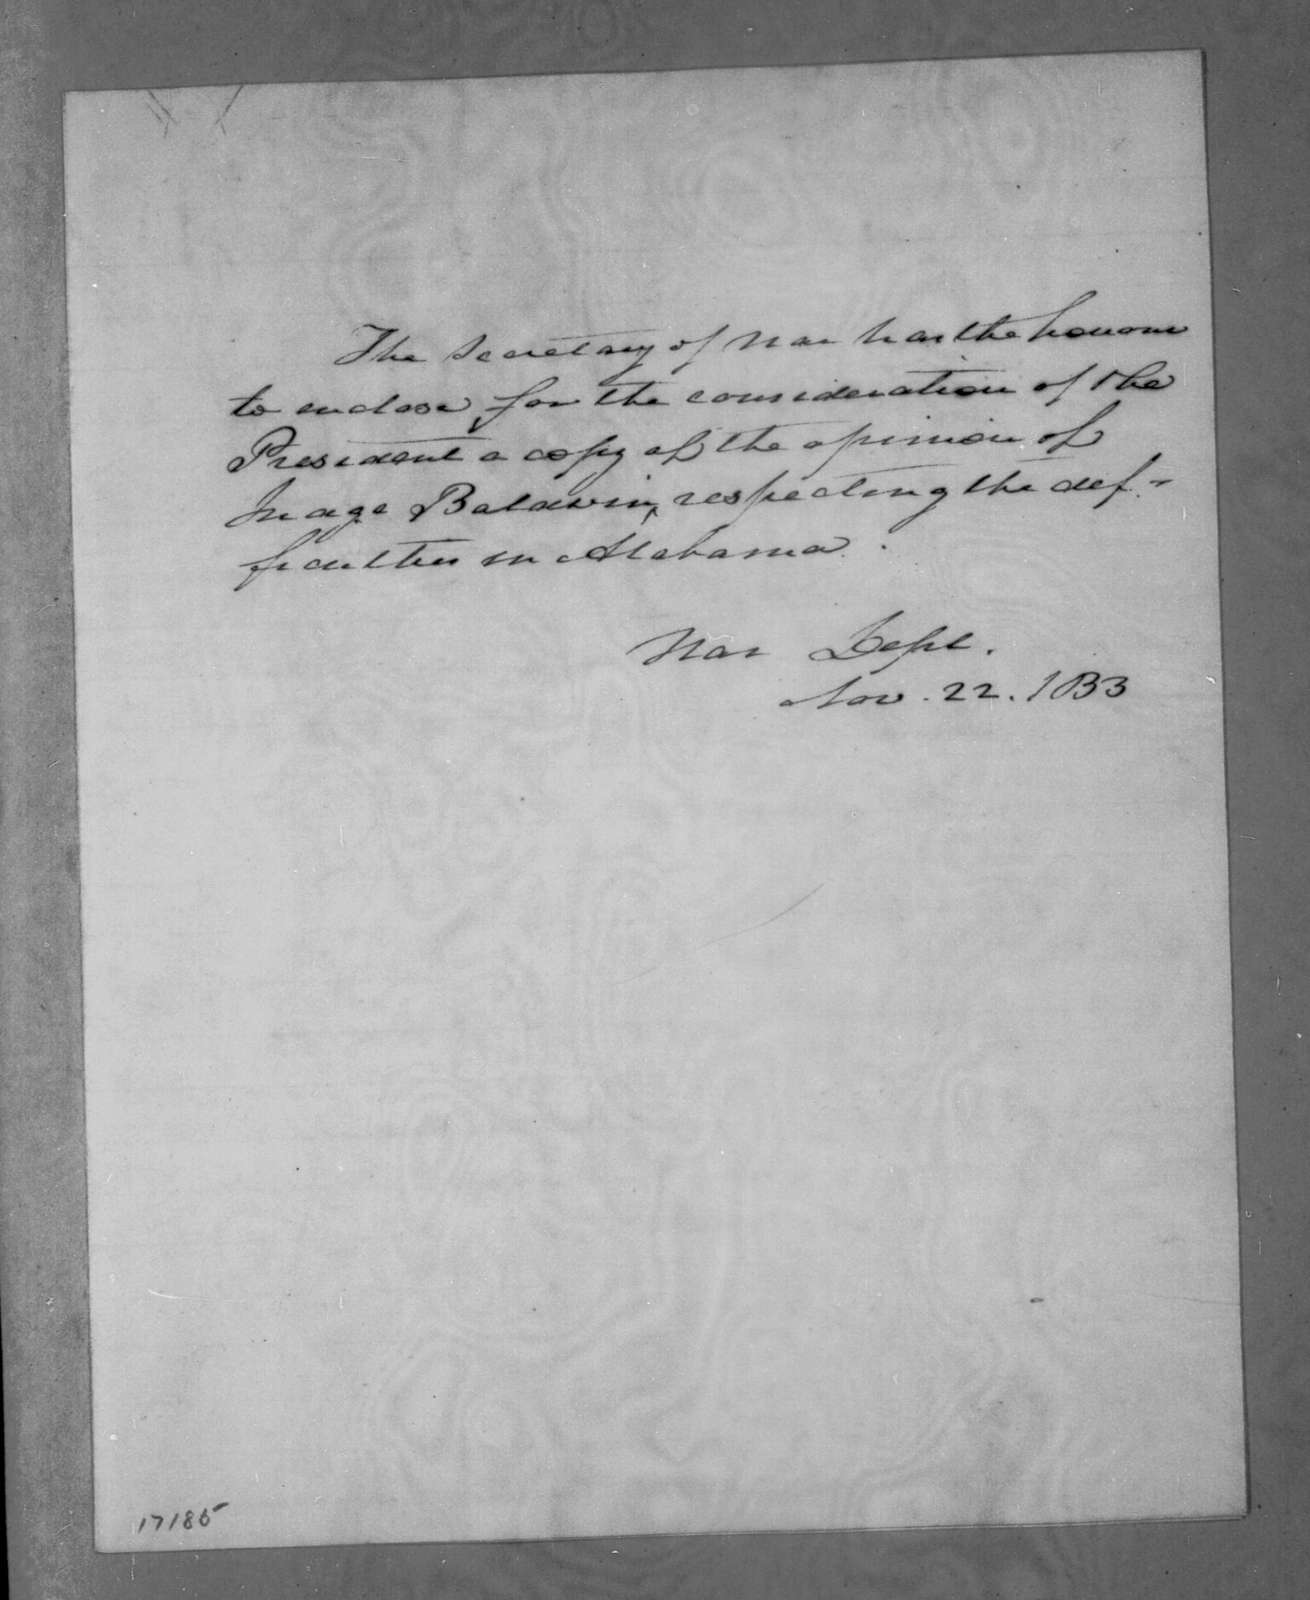 Lewis Cass to Andrew Jackson, November 22, 1833